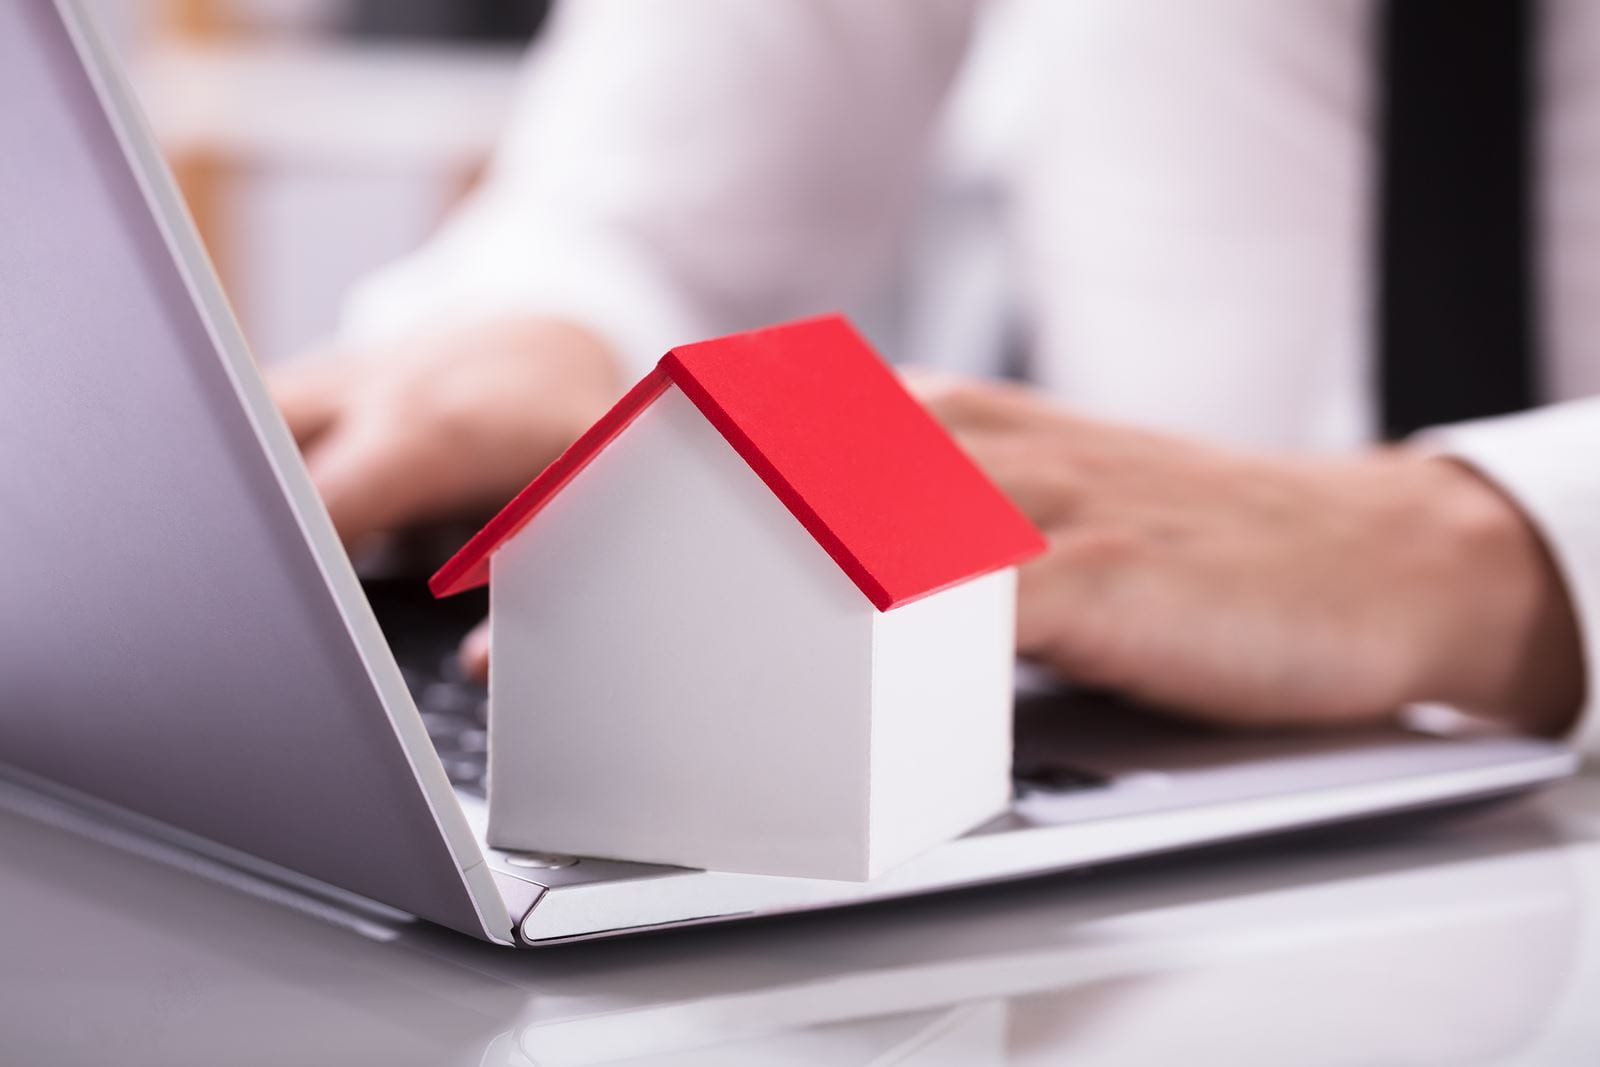 4 Questions That You Can Have about FHA Programs with Low Credit Scores